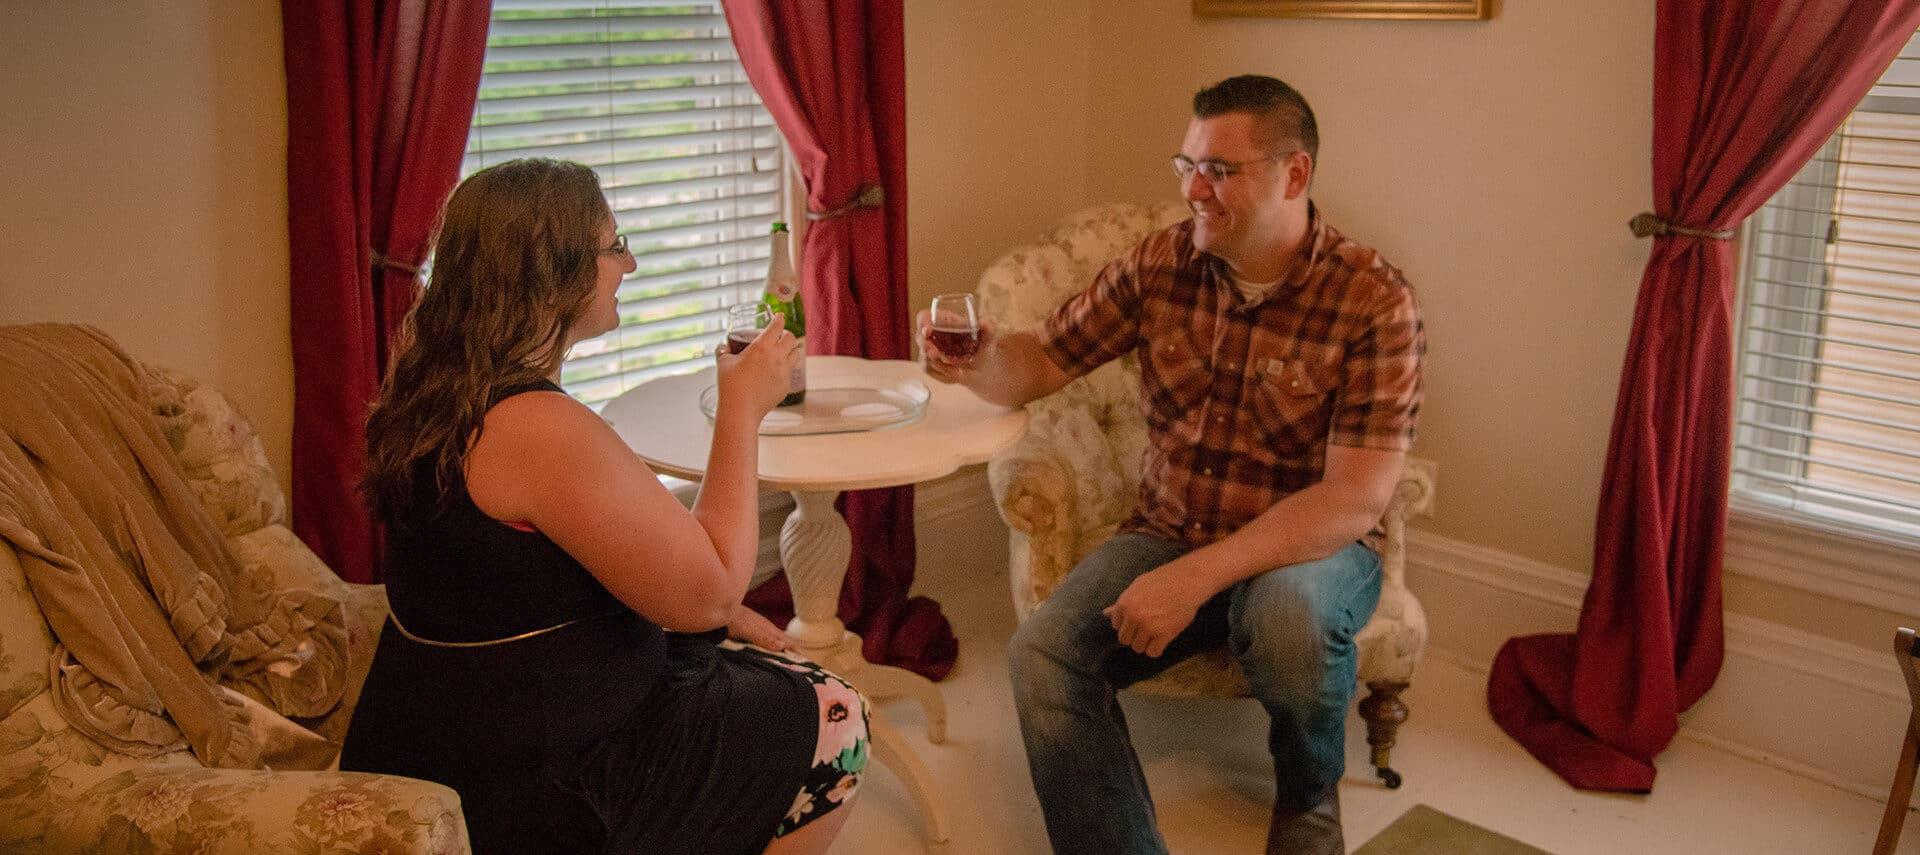 young couple toasting with glasses of wine